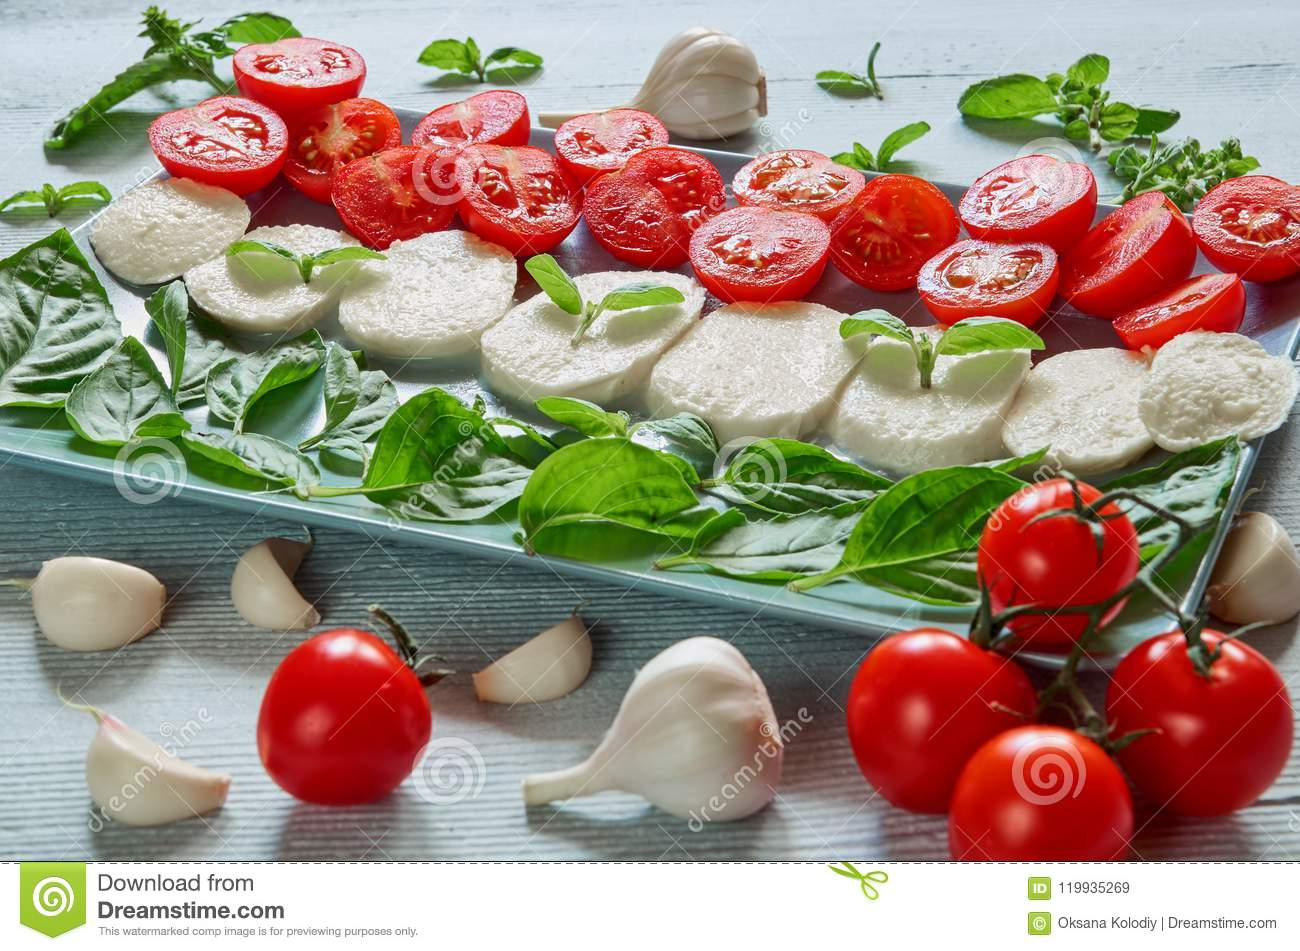 Healthy caprese salad with sliced mozzarella cheese, cherry tomatoes, fresh basil leaves, garlic. Traditional italian food